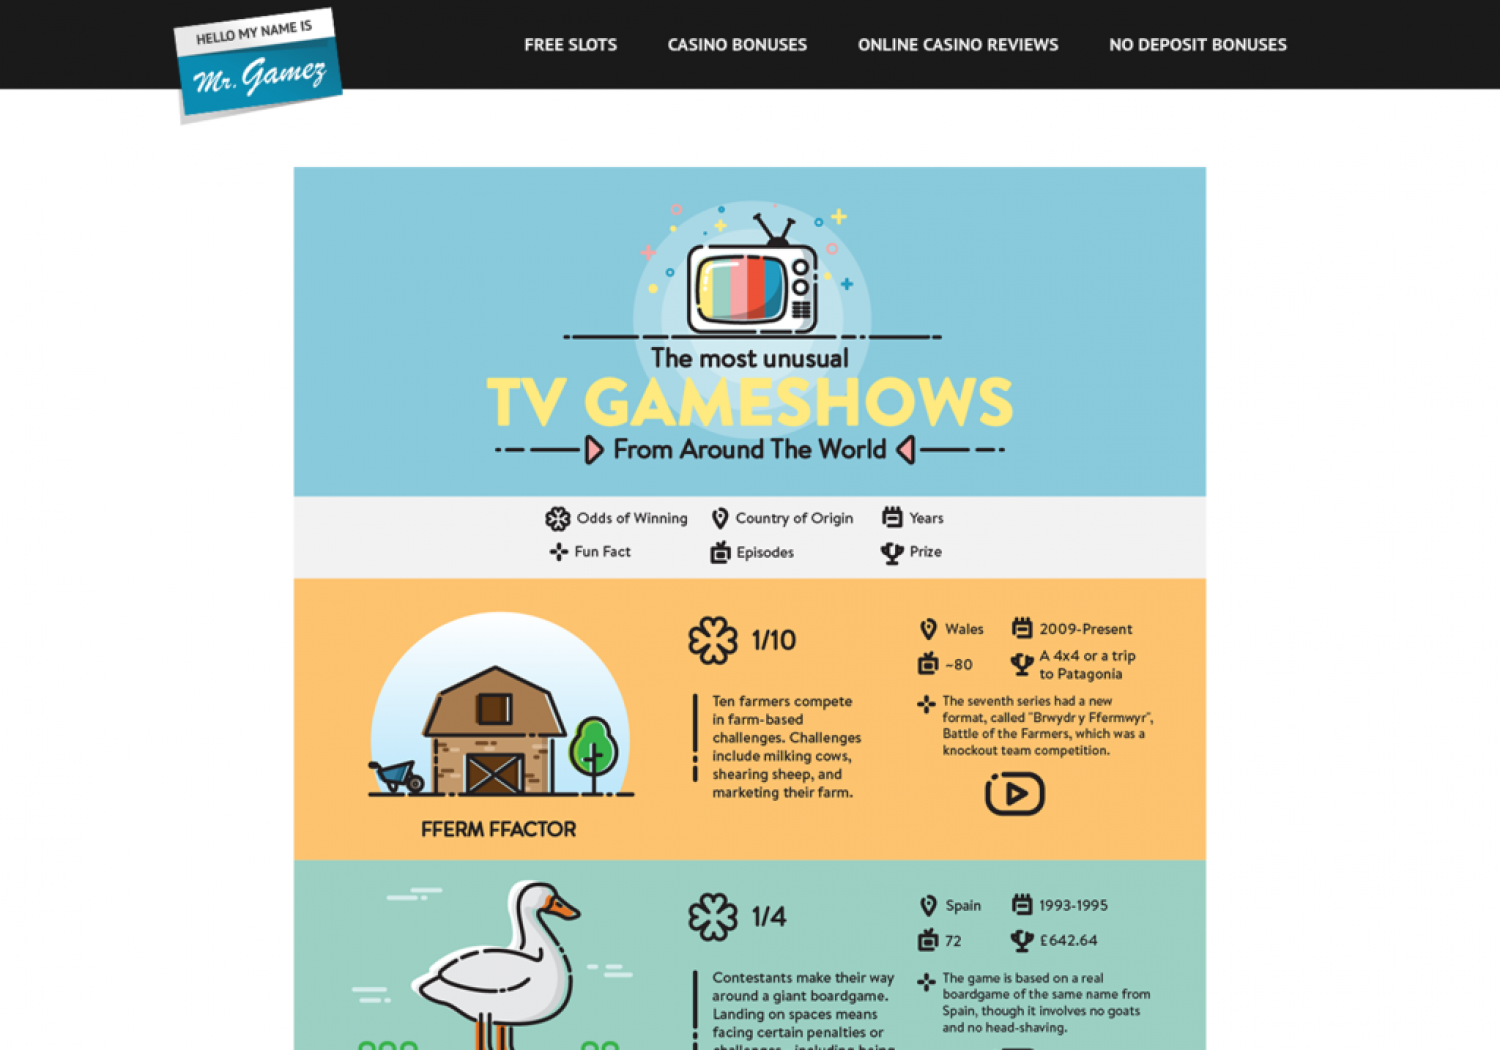 The Most Unusual TV Gameshows from Around the World Infographic